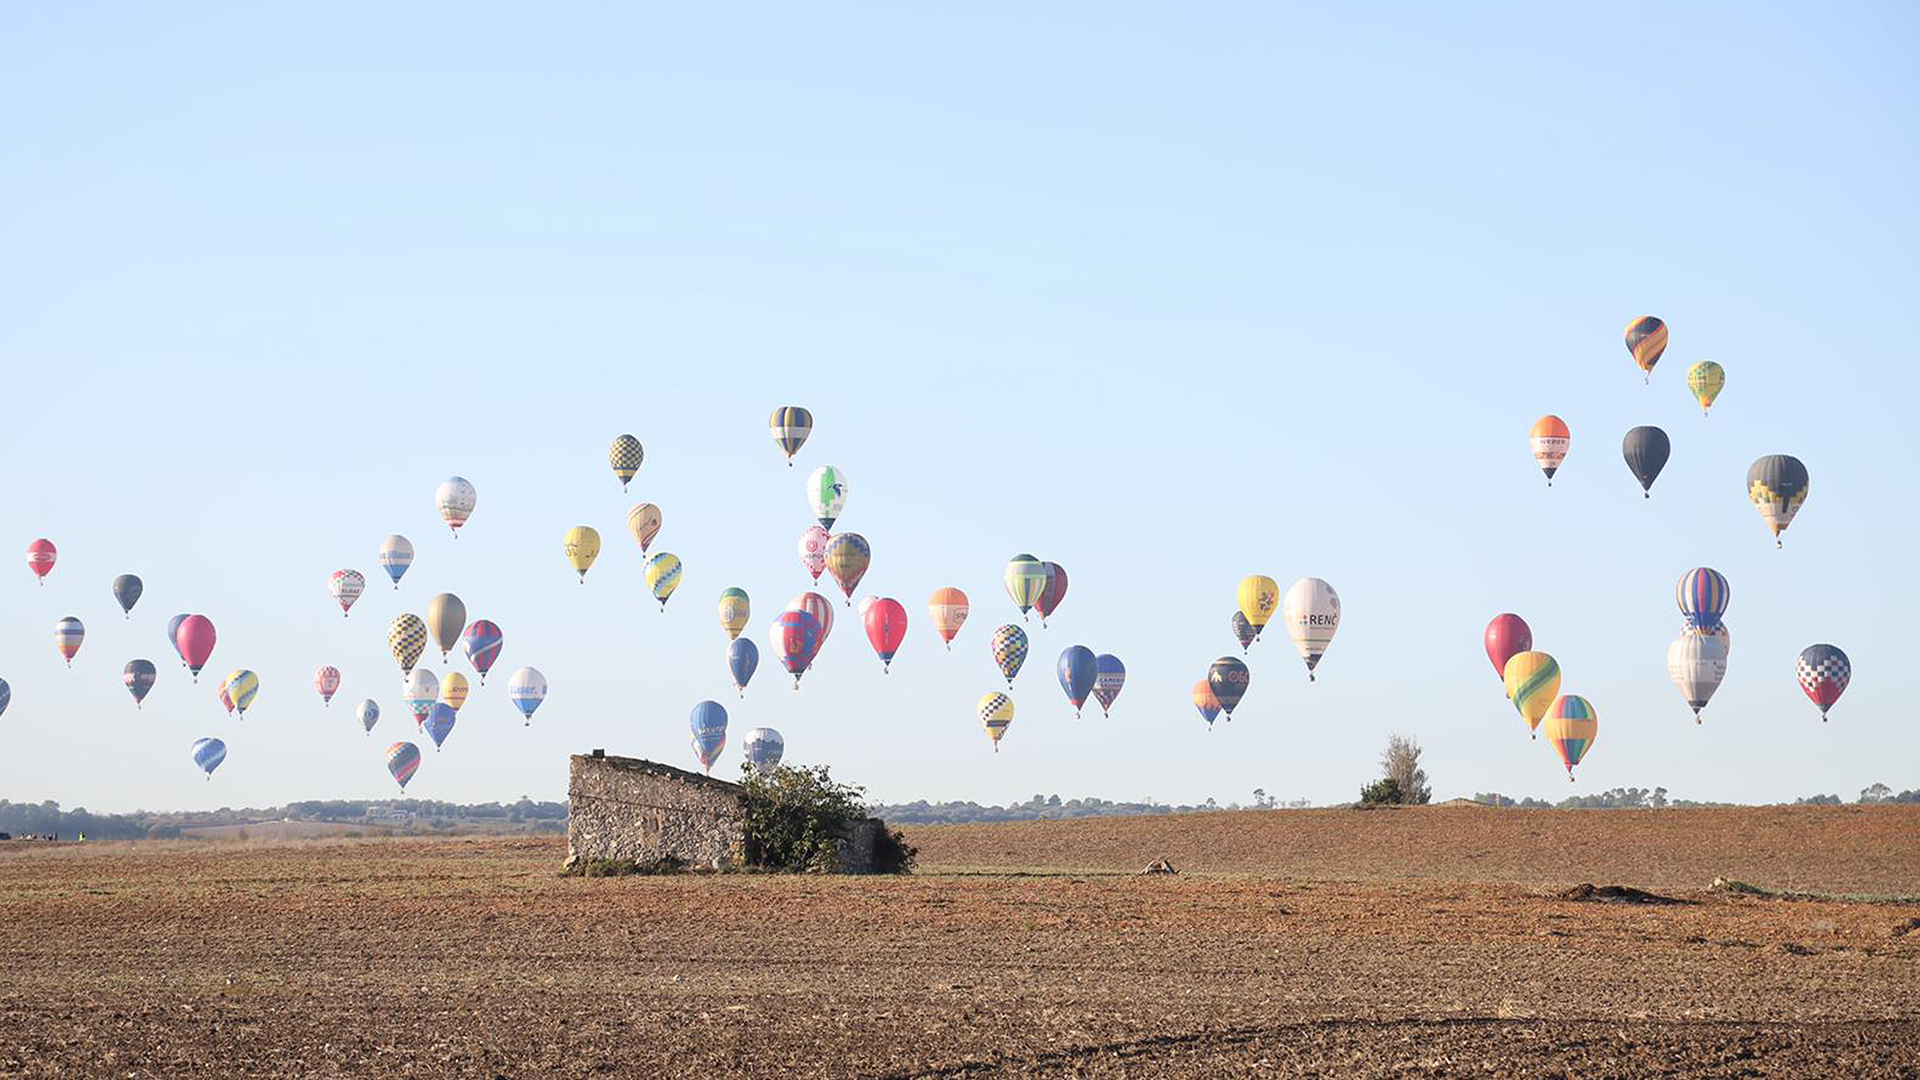 A hundred hot air balloons over Mallorca fields countryside